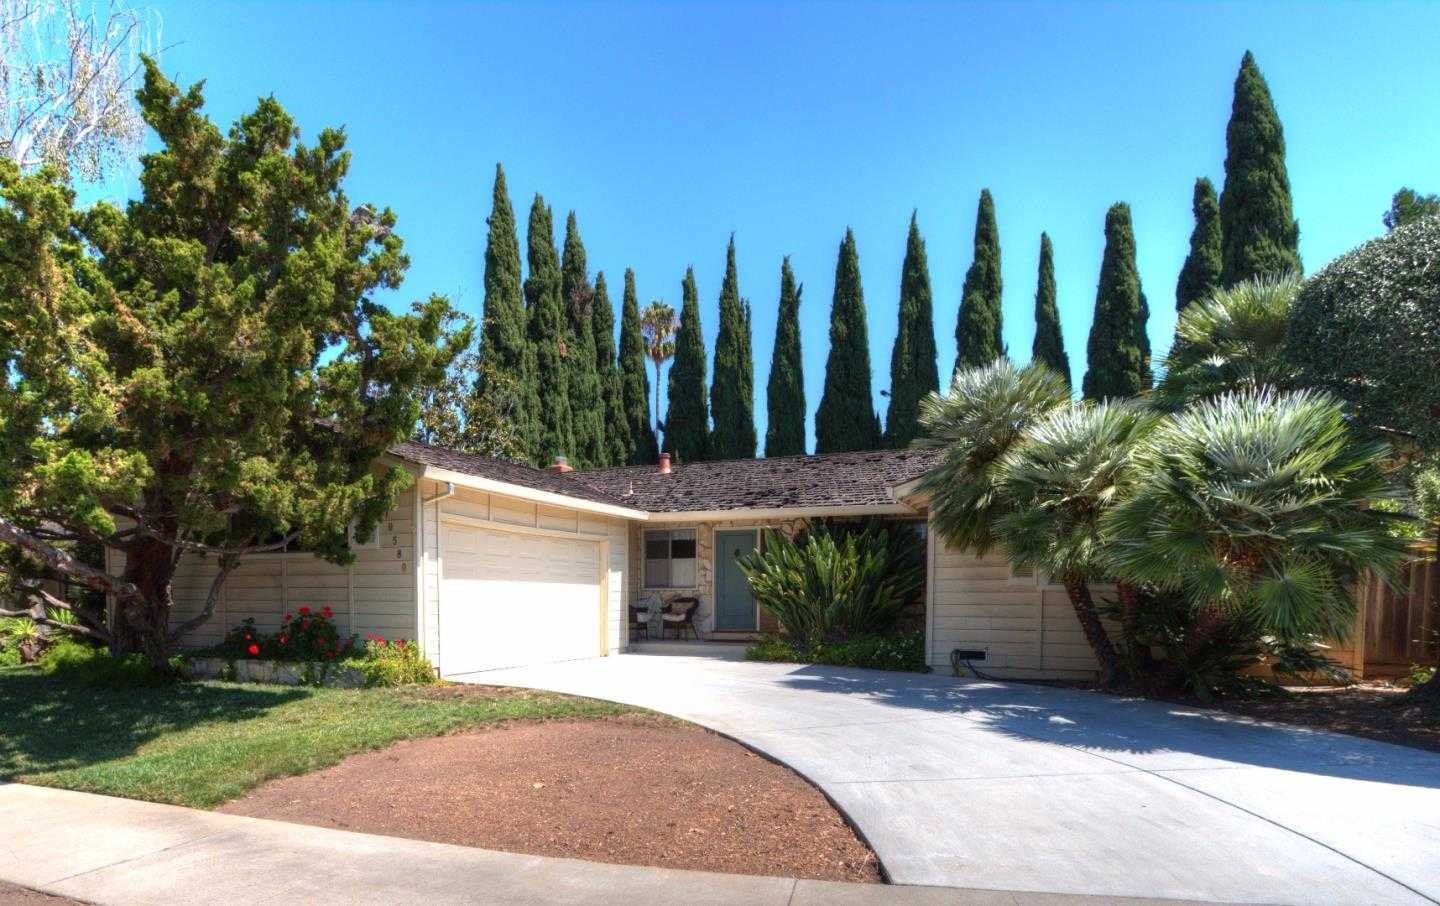 $1,700,000 - 4Br/2Ba -  for Sale in Cupertino